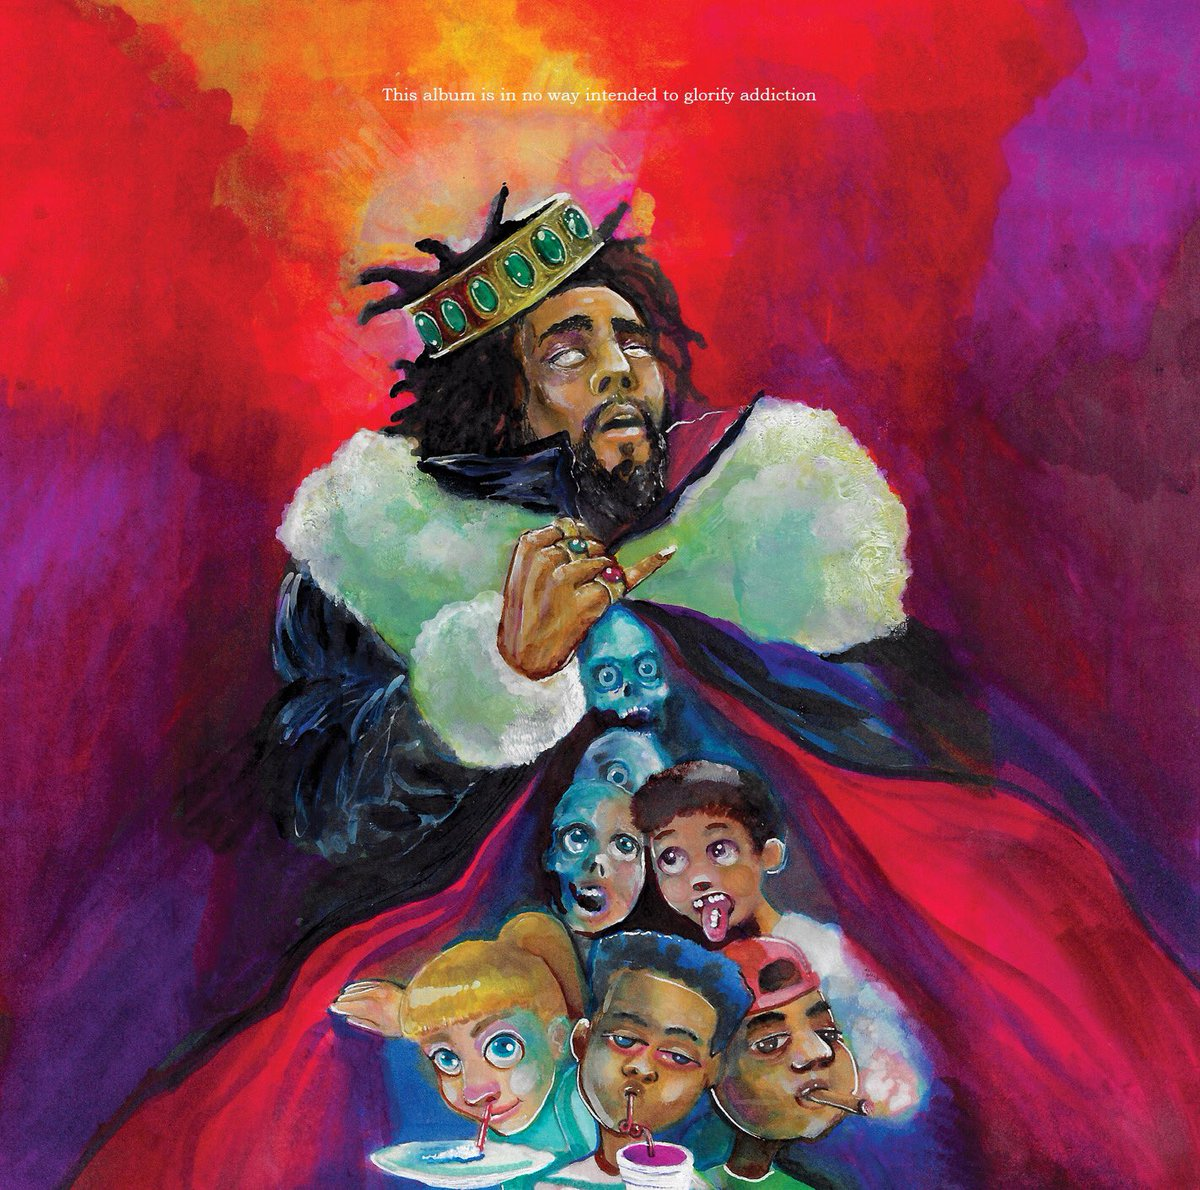 J. Cole Releases Artwork For Upcoming Album 'KOD'